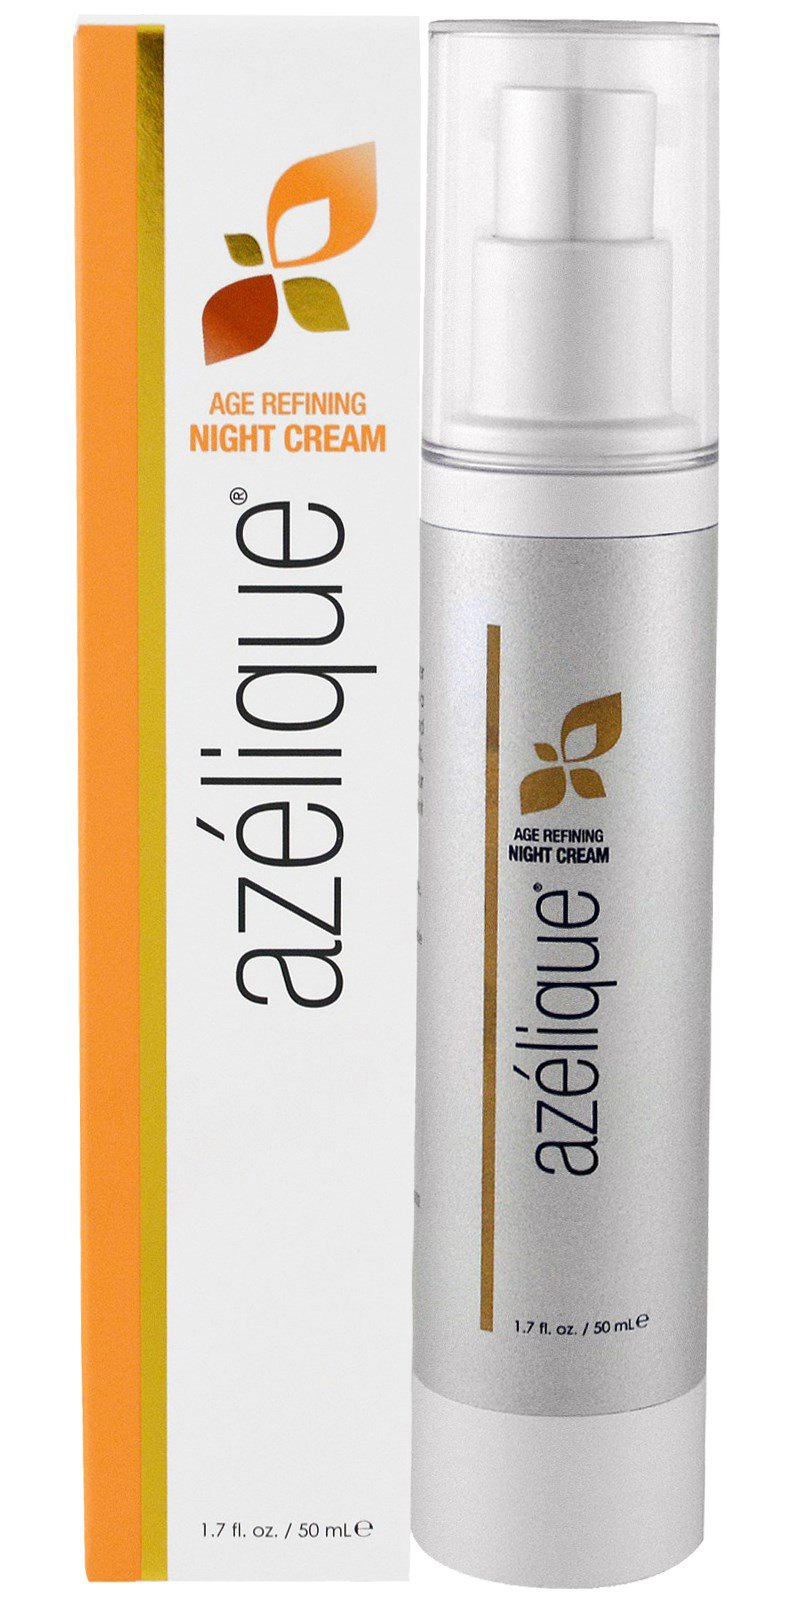 Azelique Age Refining Night Cream